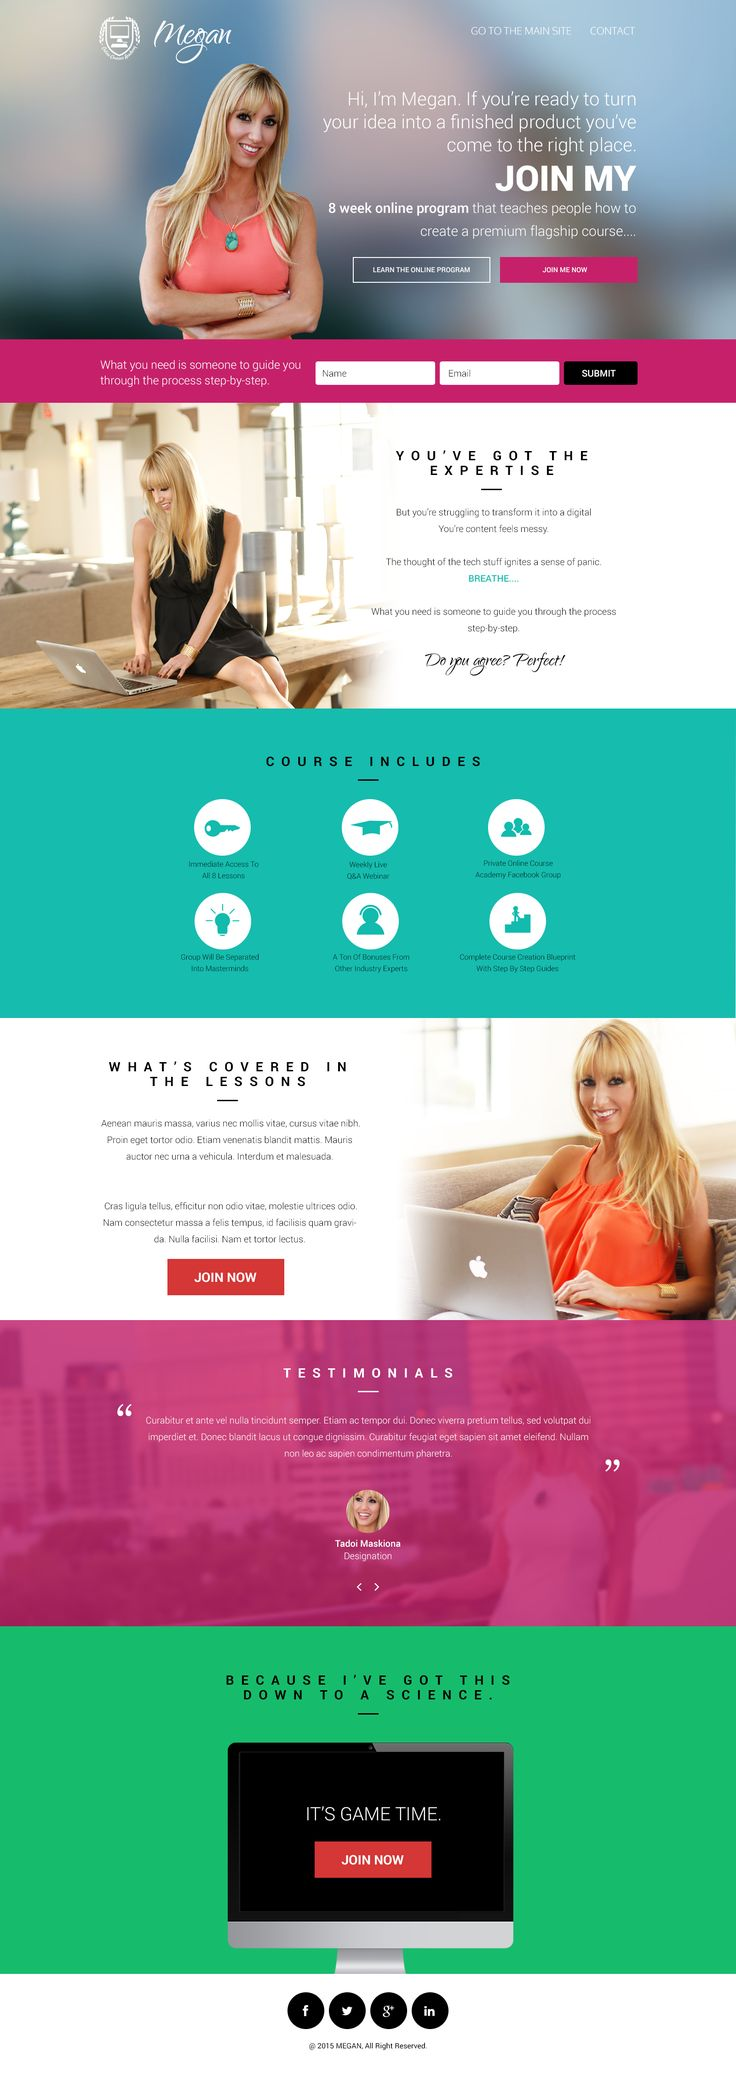 Design #20 by praka | Create a modern, sleek, fun landing page/sales page for the launch course on how to create an online course.